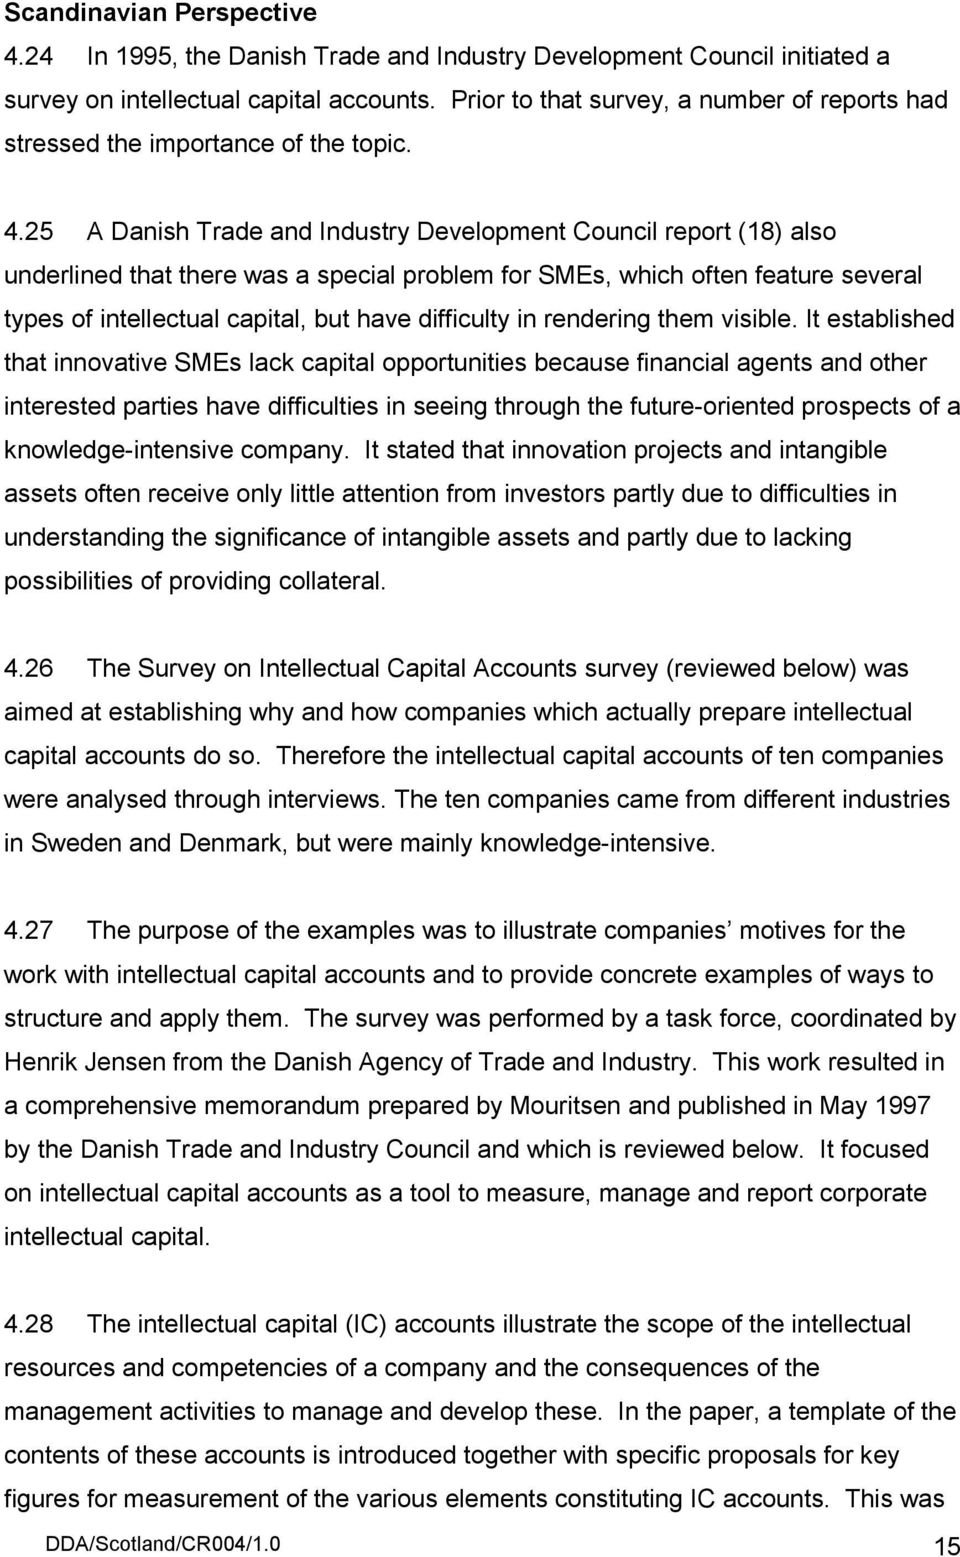 25 A Danish Trade and Industry Development Council report (18) also underlined that there was a special problem for SMEs, which often feature several types of intellectual capital, but have